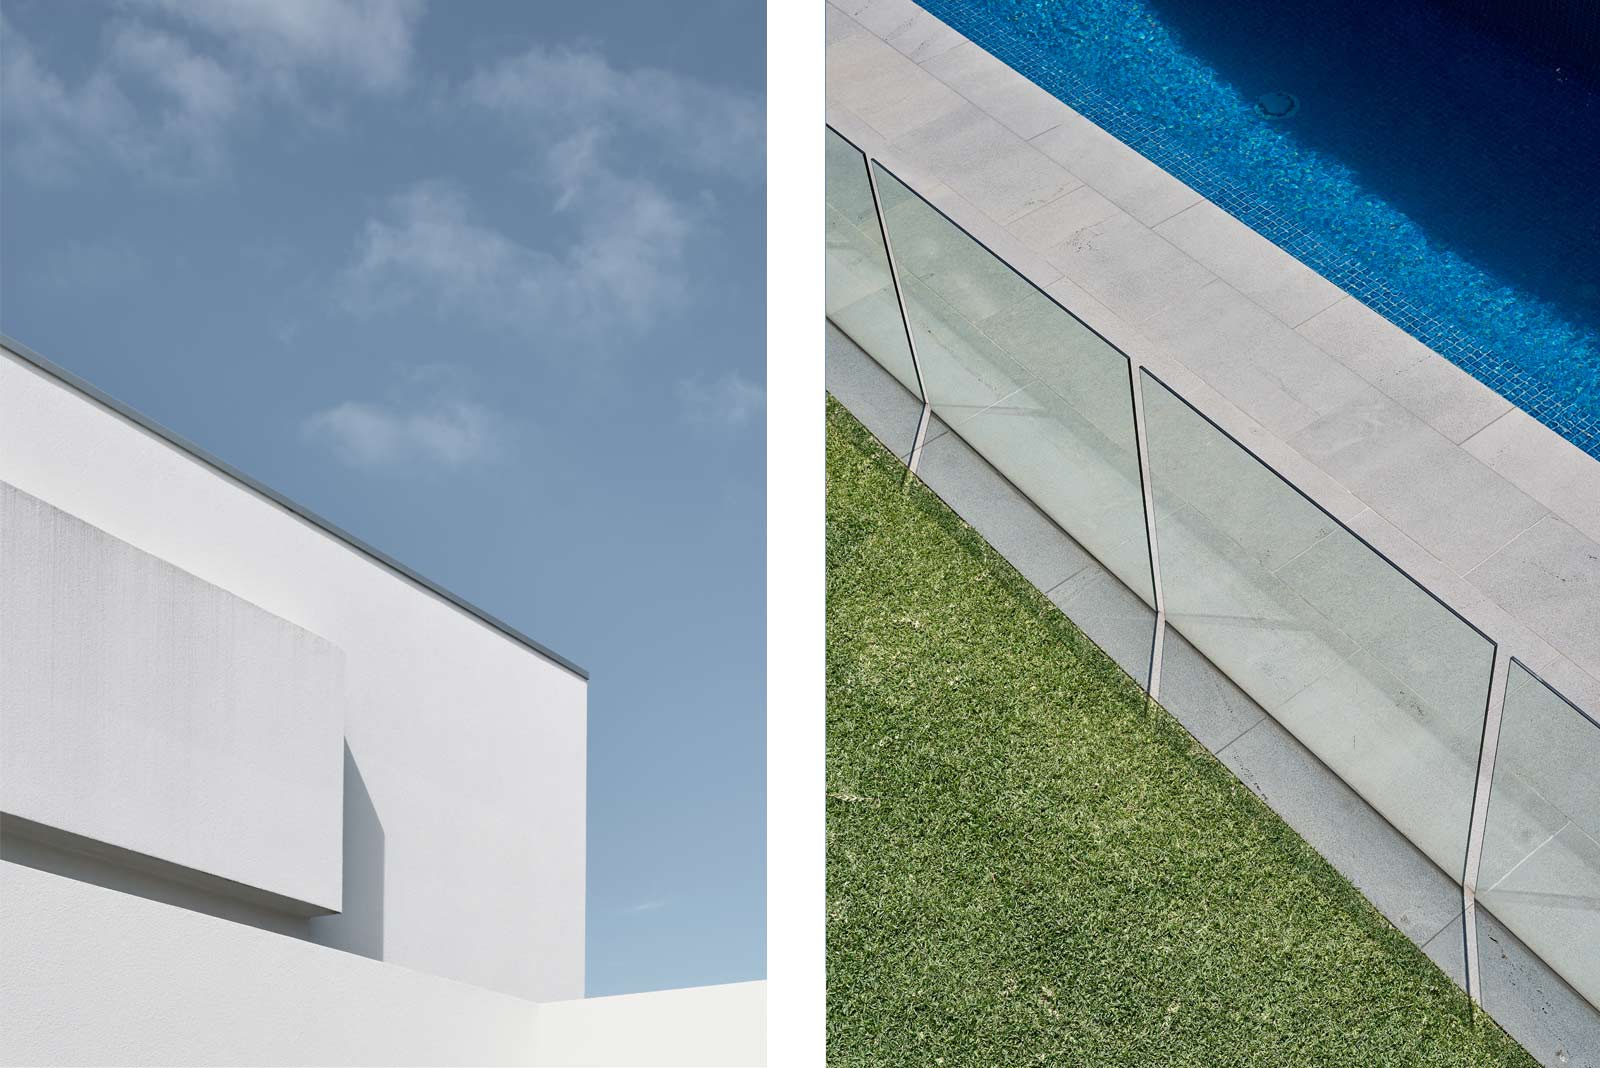 Armadale 3, Pleysier Perkins, The Local Project, Australian Architecture and Design (4)